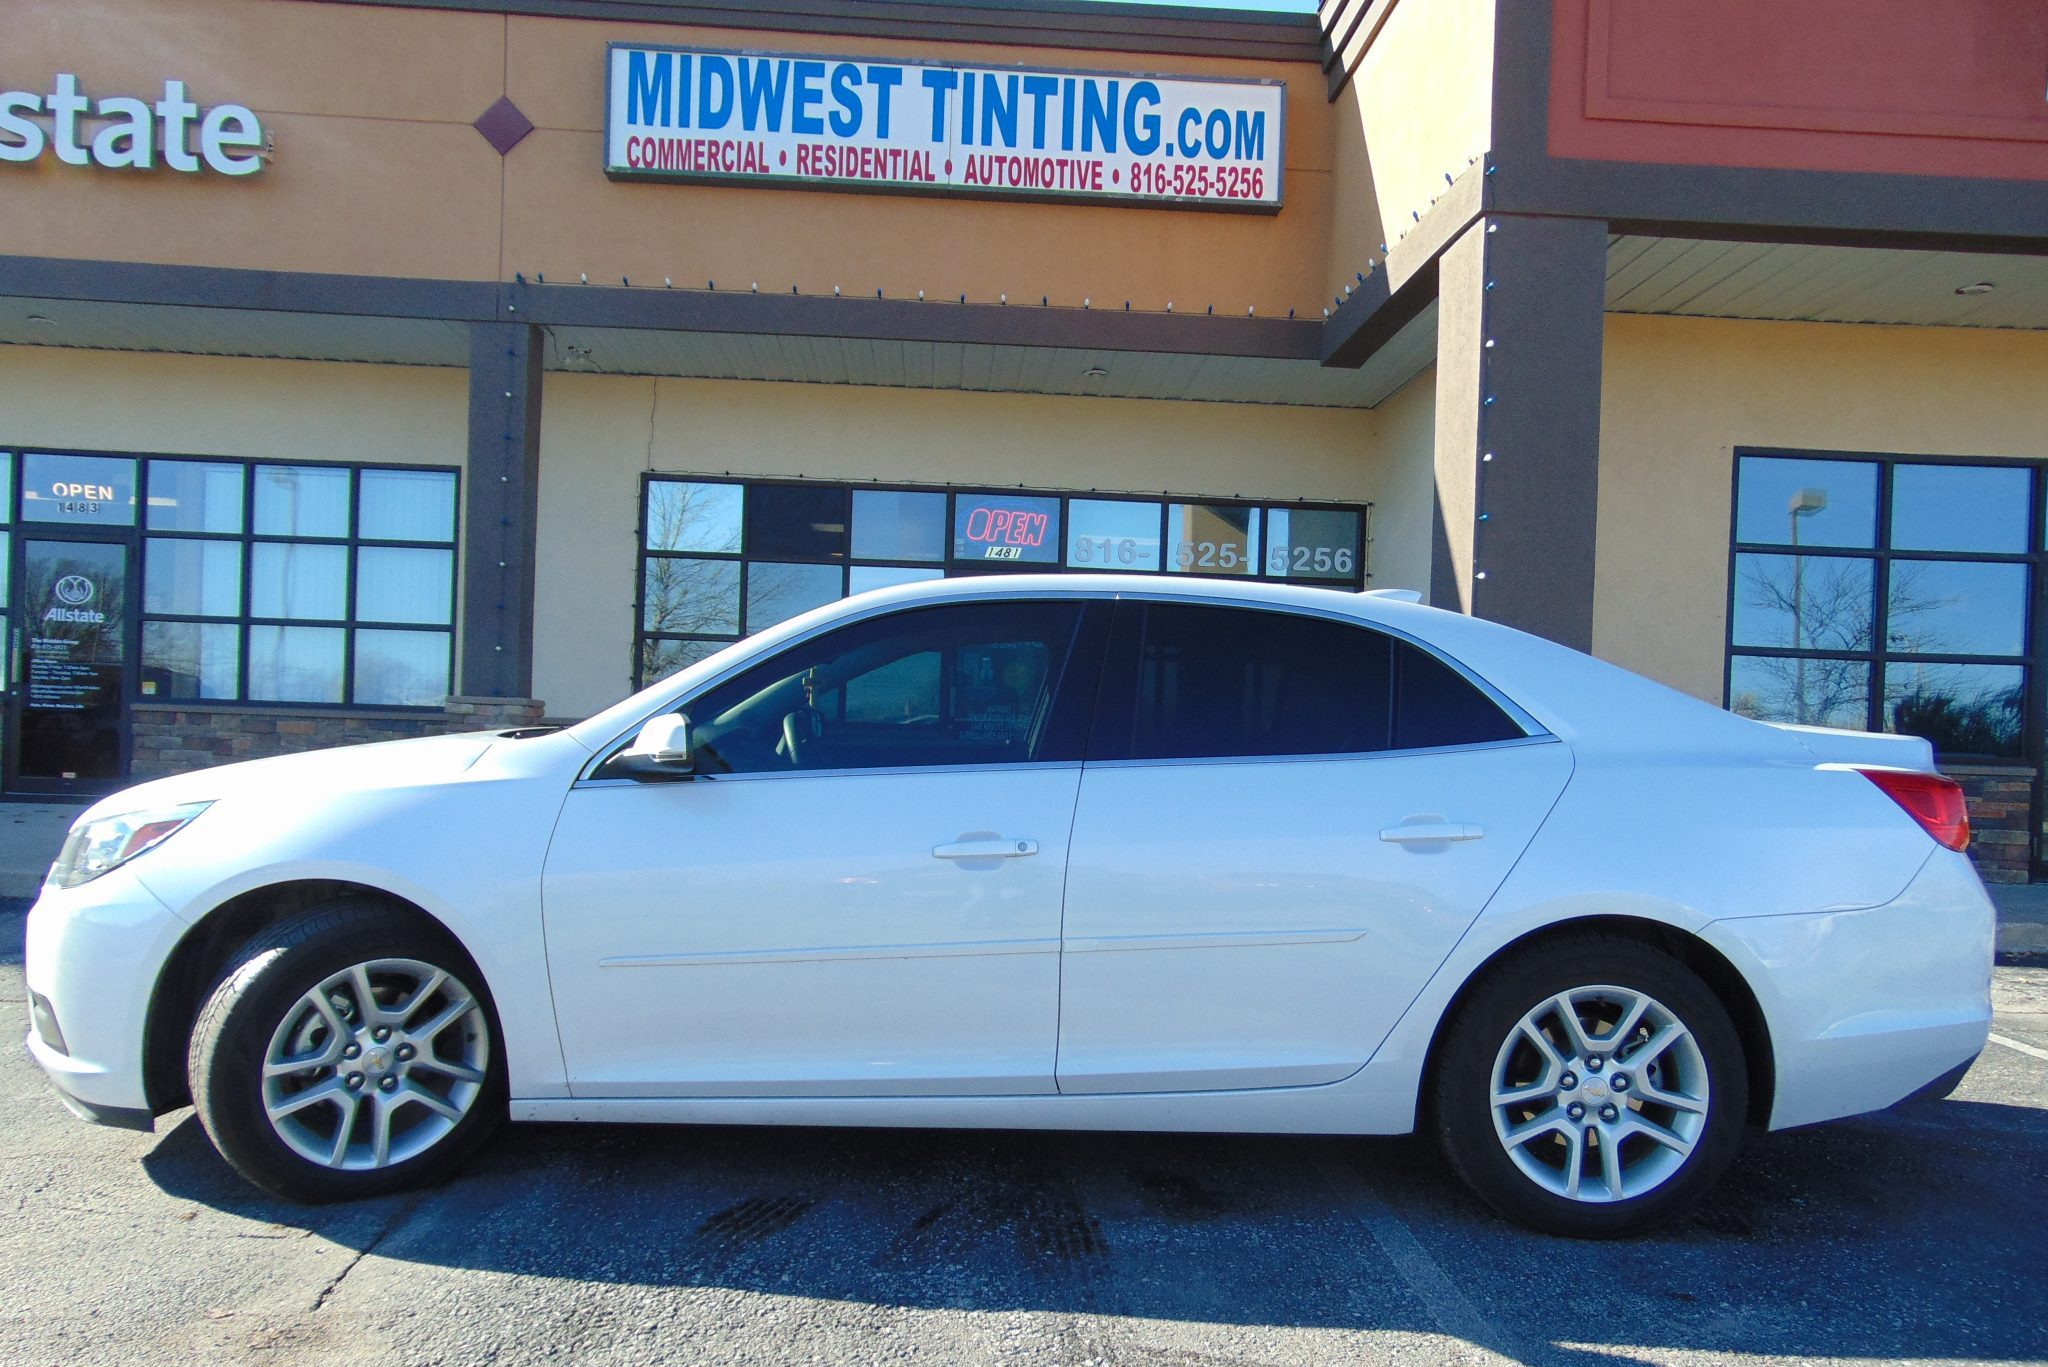 2015 Chevy Malibu Select 20 And 38 Tint